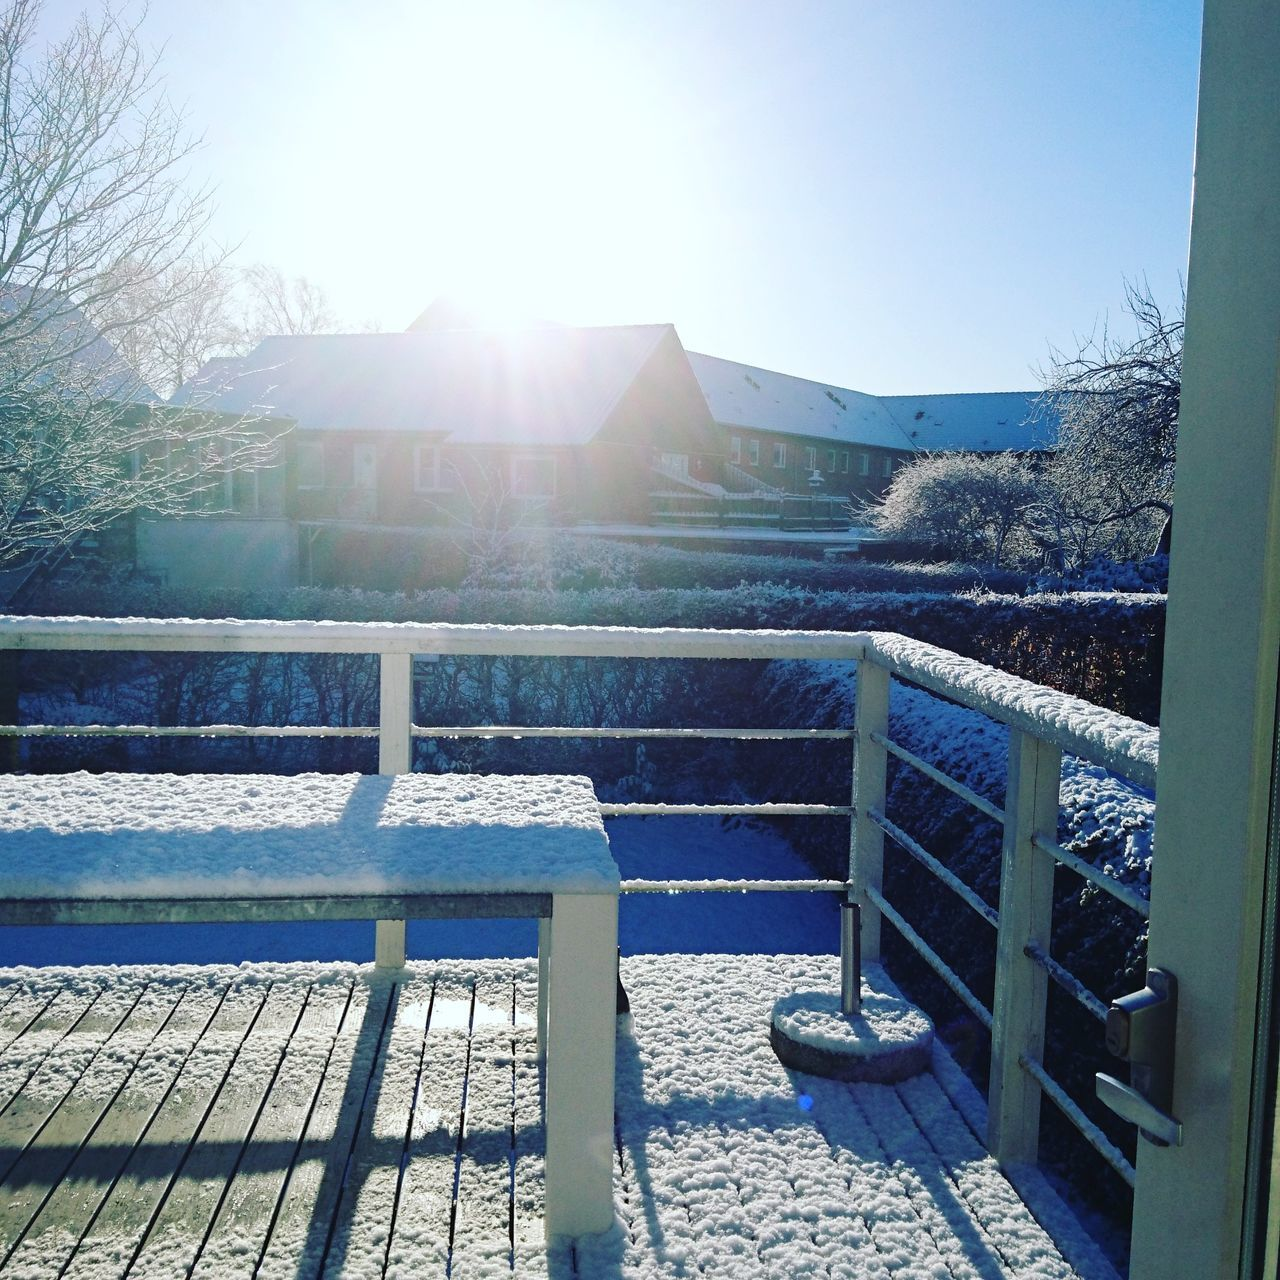 Snow in the morning sun Sunlight Winter Cold Temperature Outdoors Snow Beauty In Nature Sky Railing Swimming Pool Water Nature Staircase Day No People Frosty